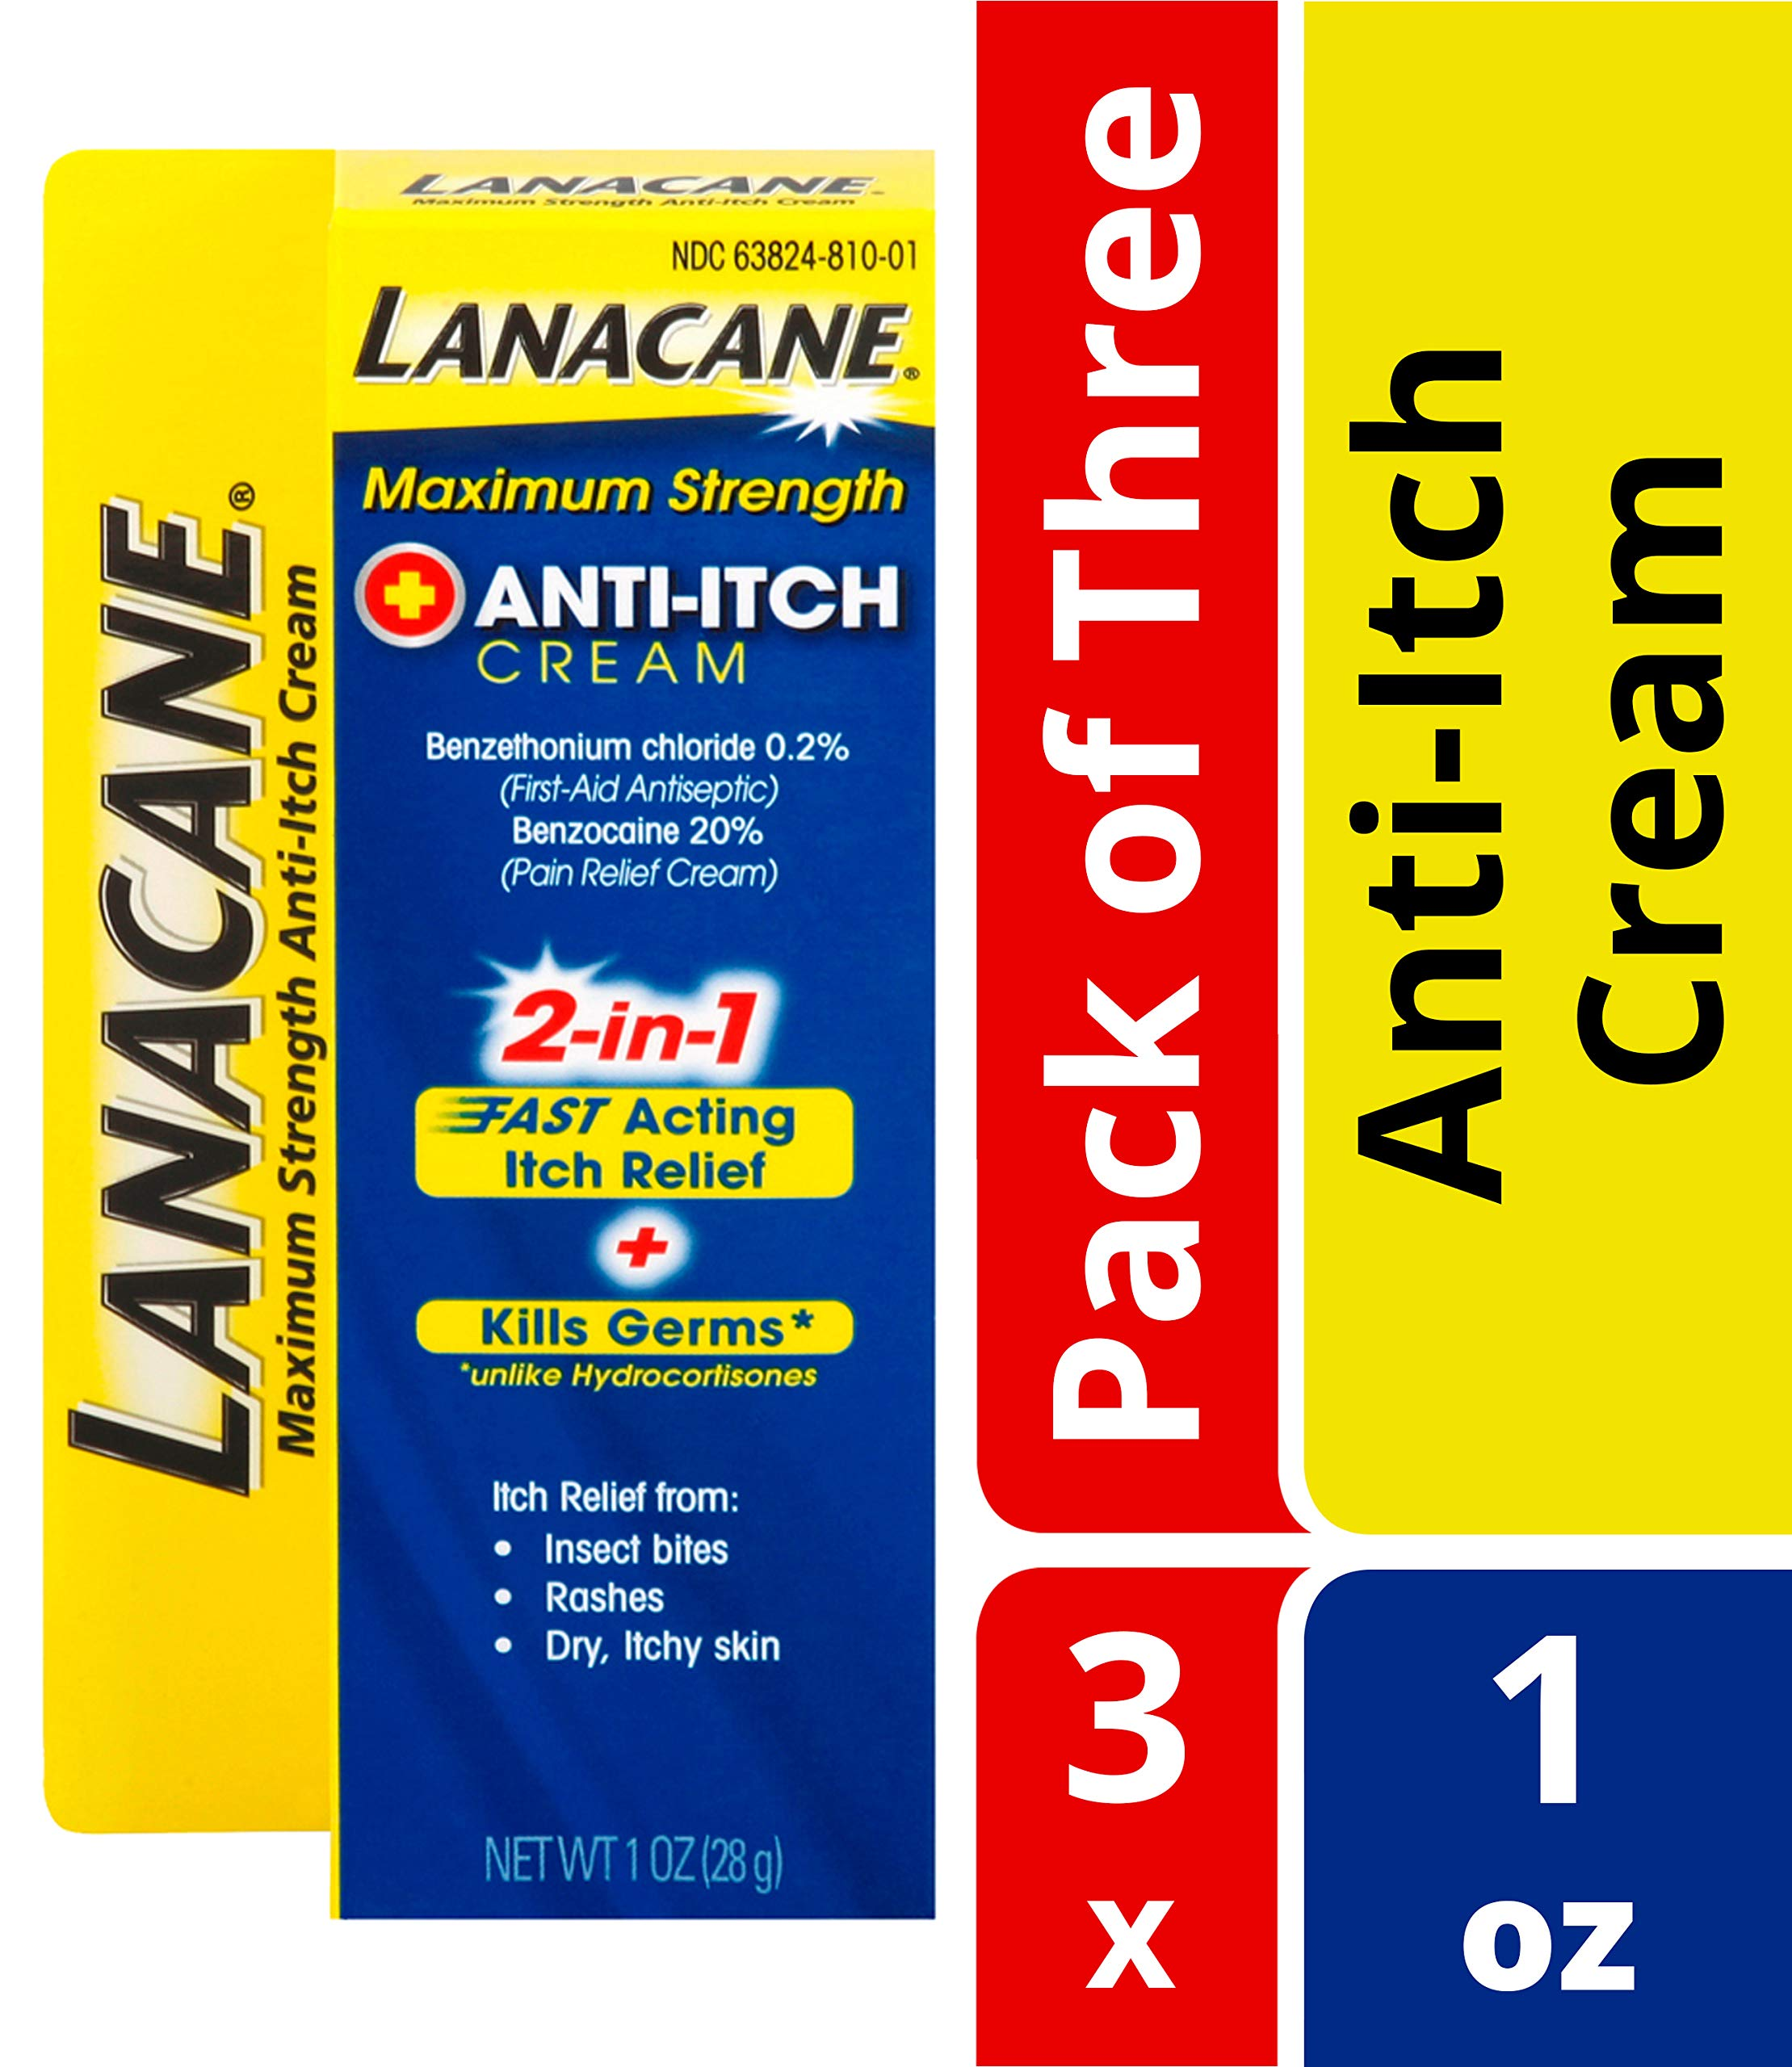 Lanacane Maximum Strength Anti-itch Cream- Antiseptic For Fast-acting Itchy Skin Relief From Insect Bites, Rashes & Dry Skin, Cools & Soothes For Instant Relief, With Benzocaine, 1 oz. (Pack of 3) by Lanacane